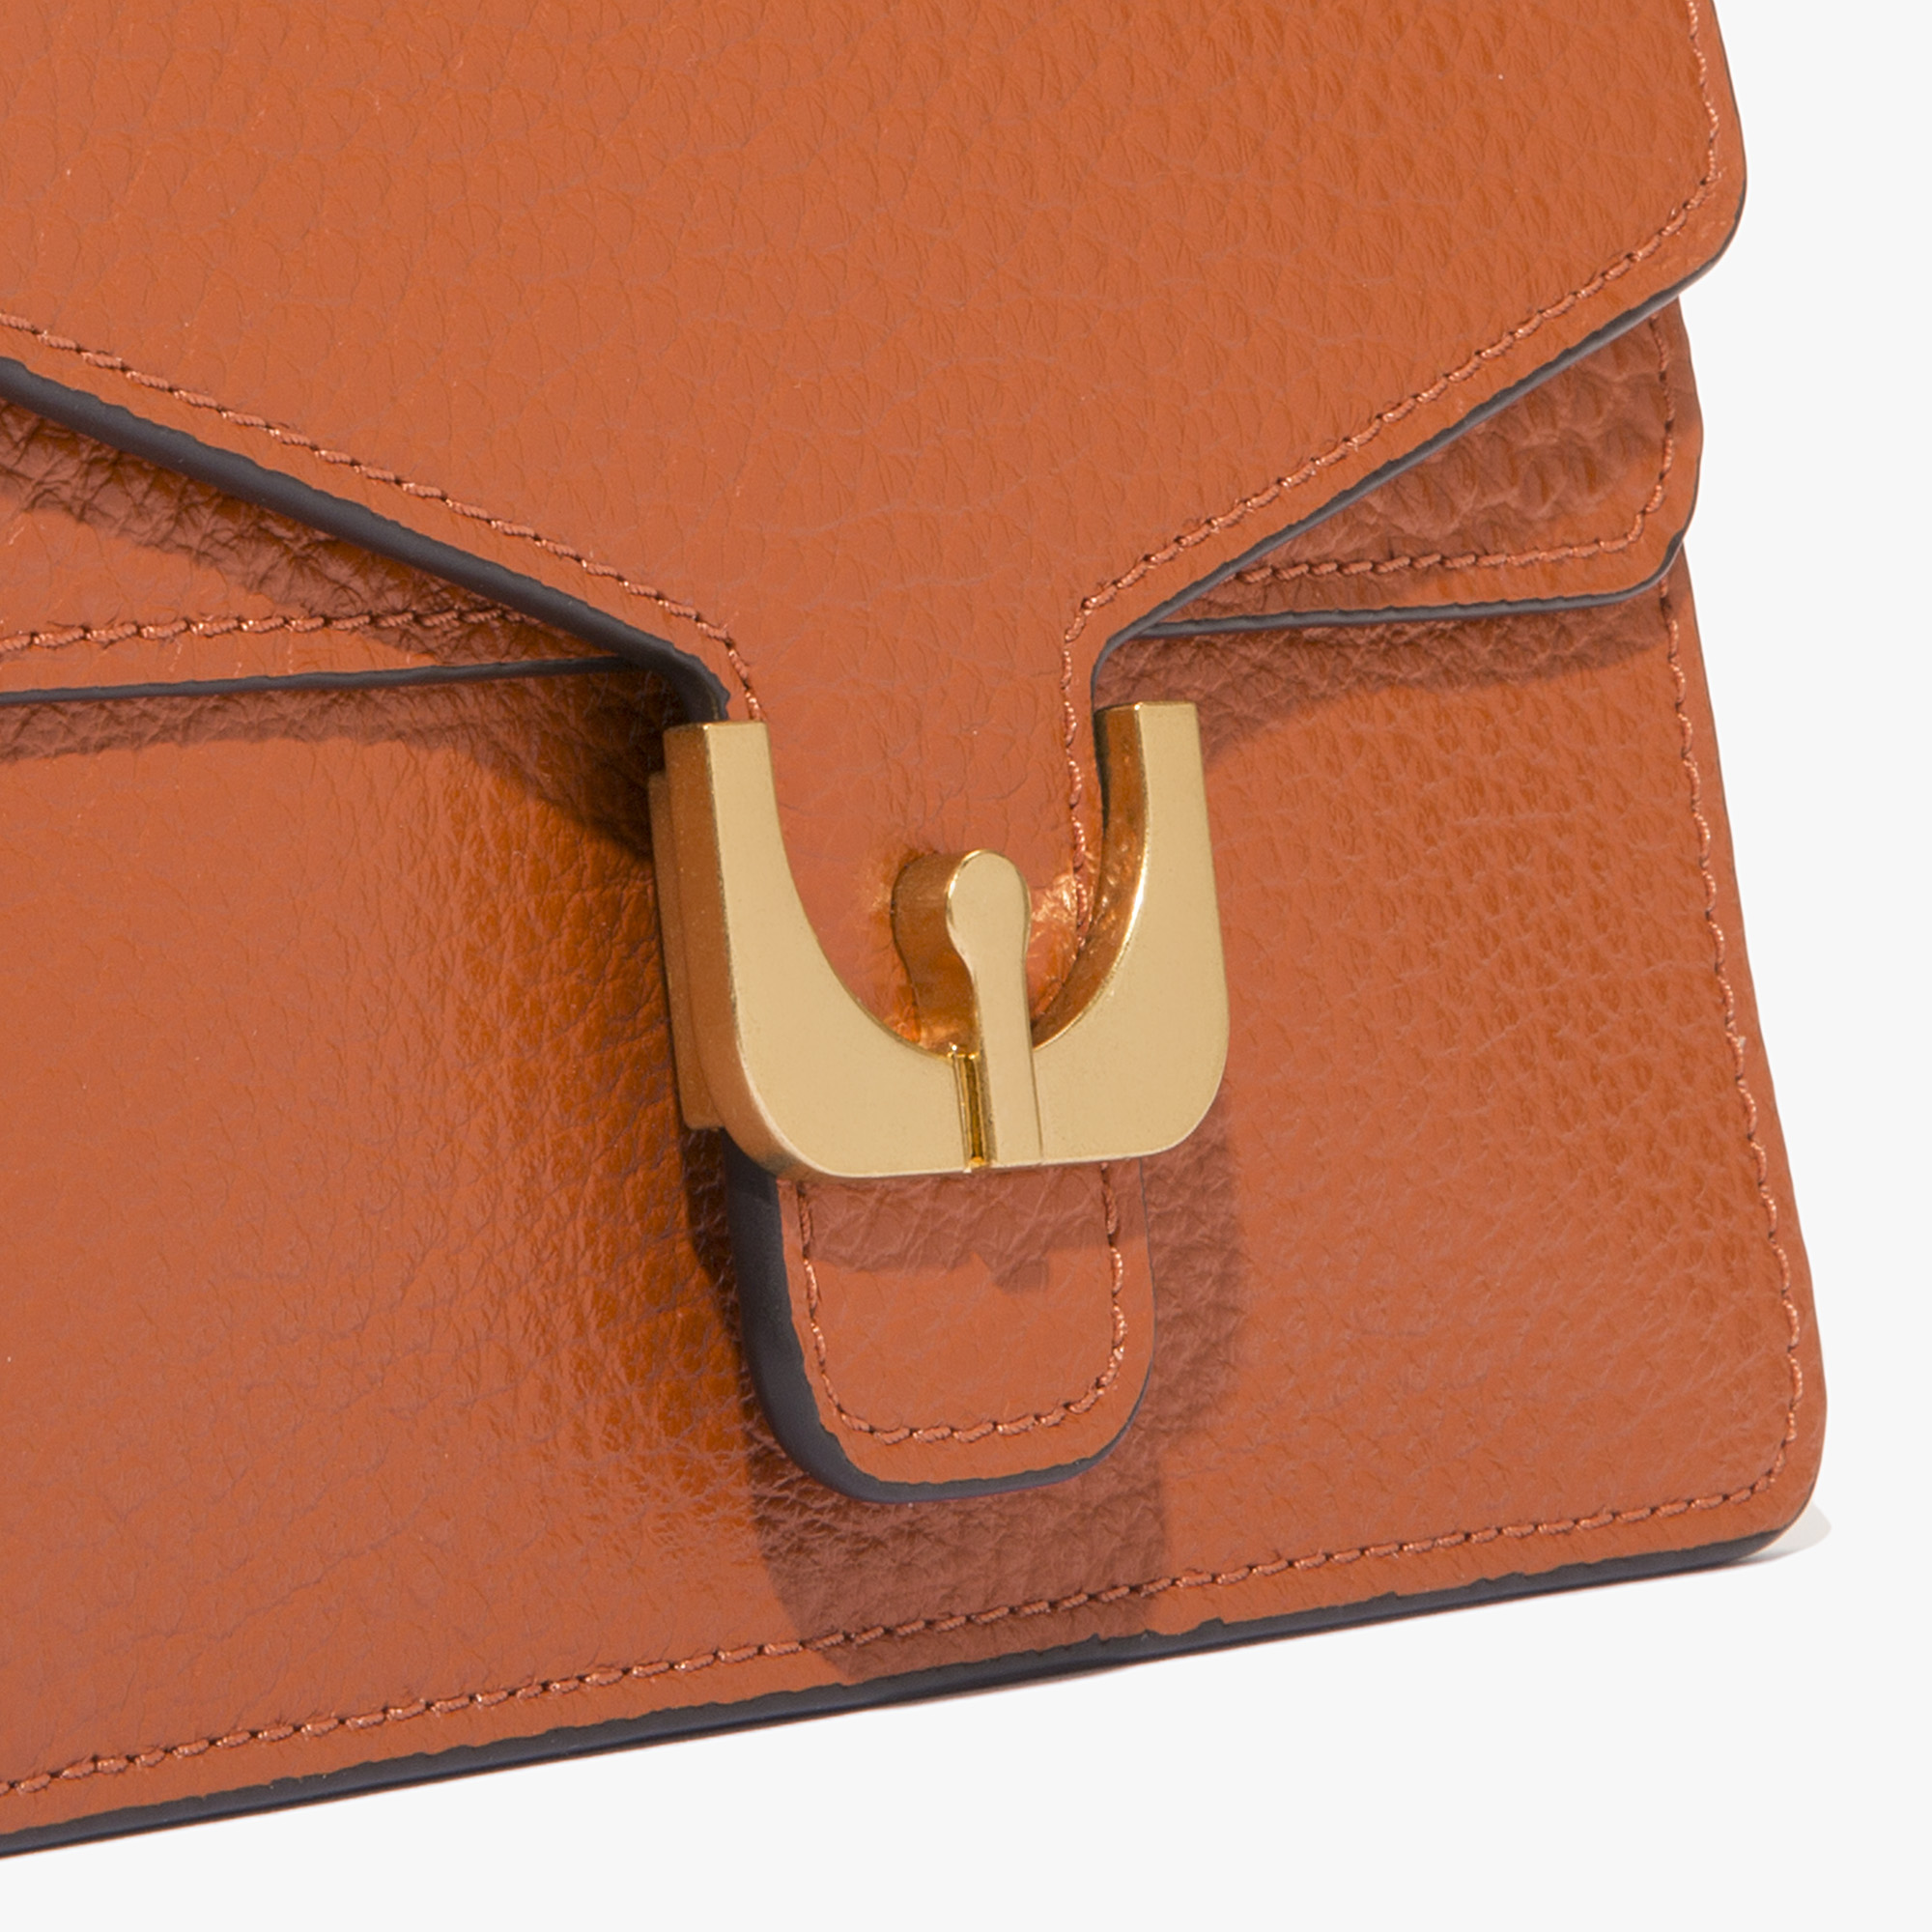 Ambrine leather bag with a single strap